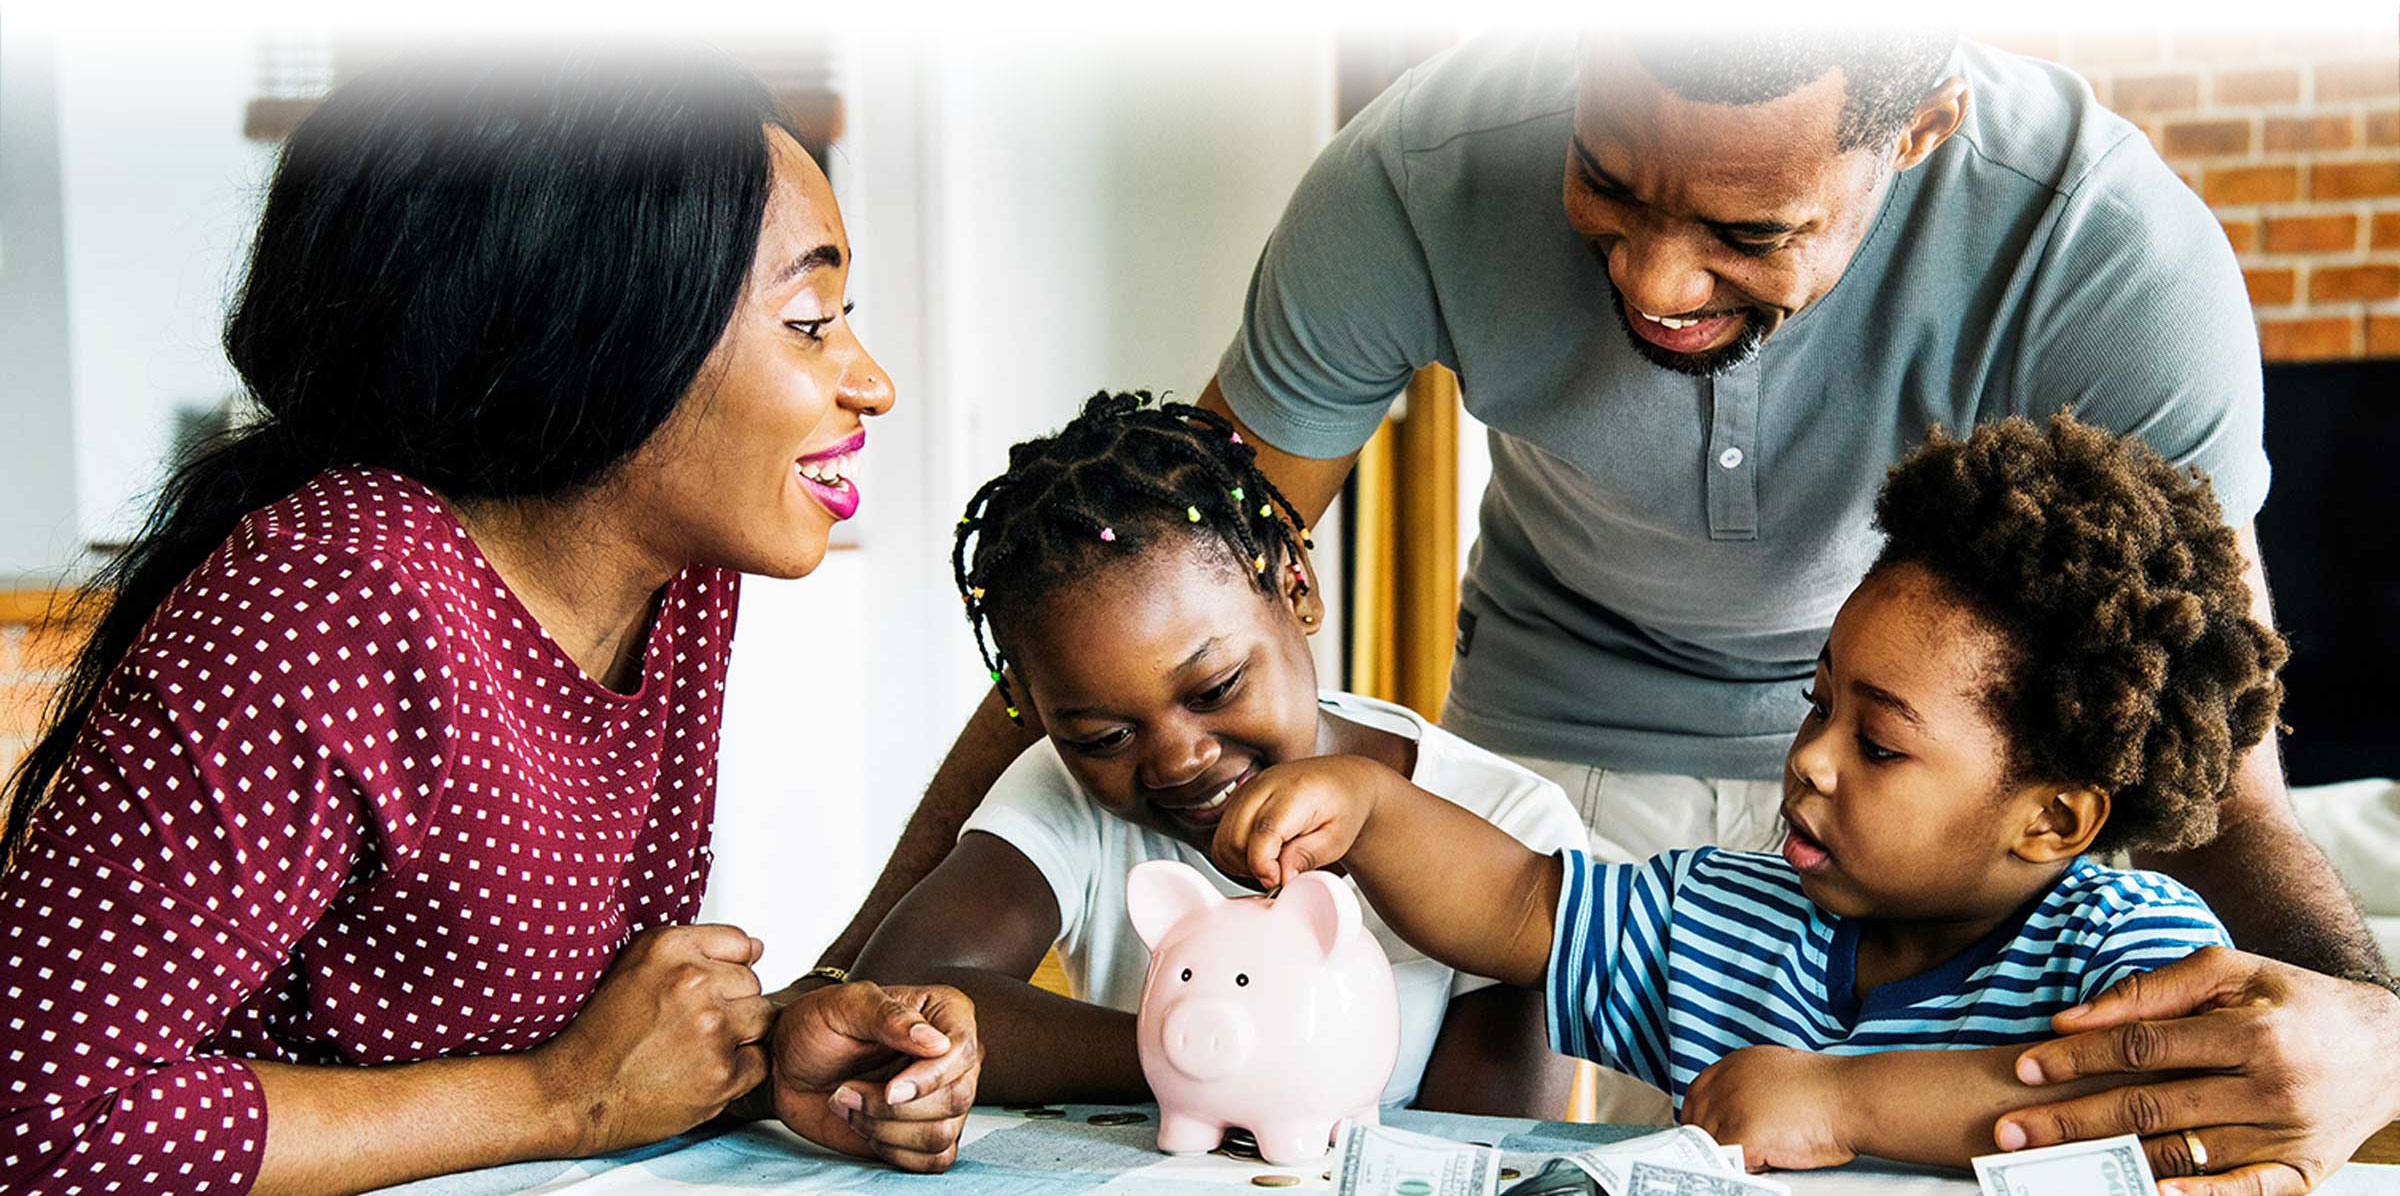 Family at dinner table with piggy bank, saving, piggy bank